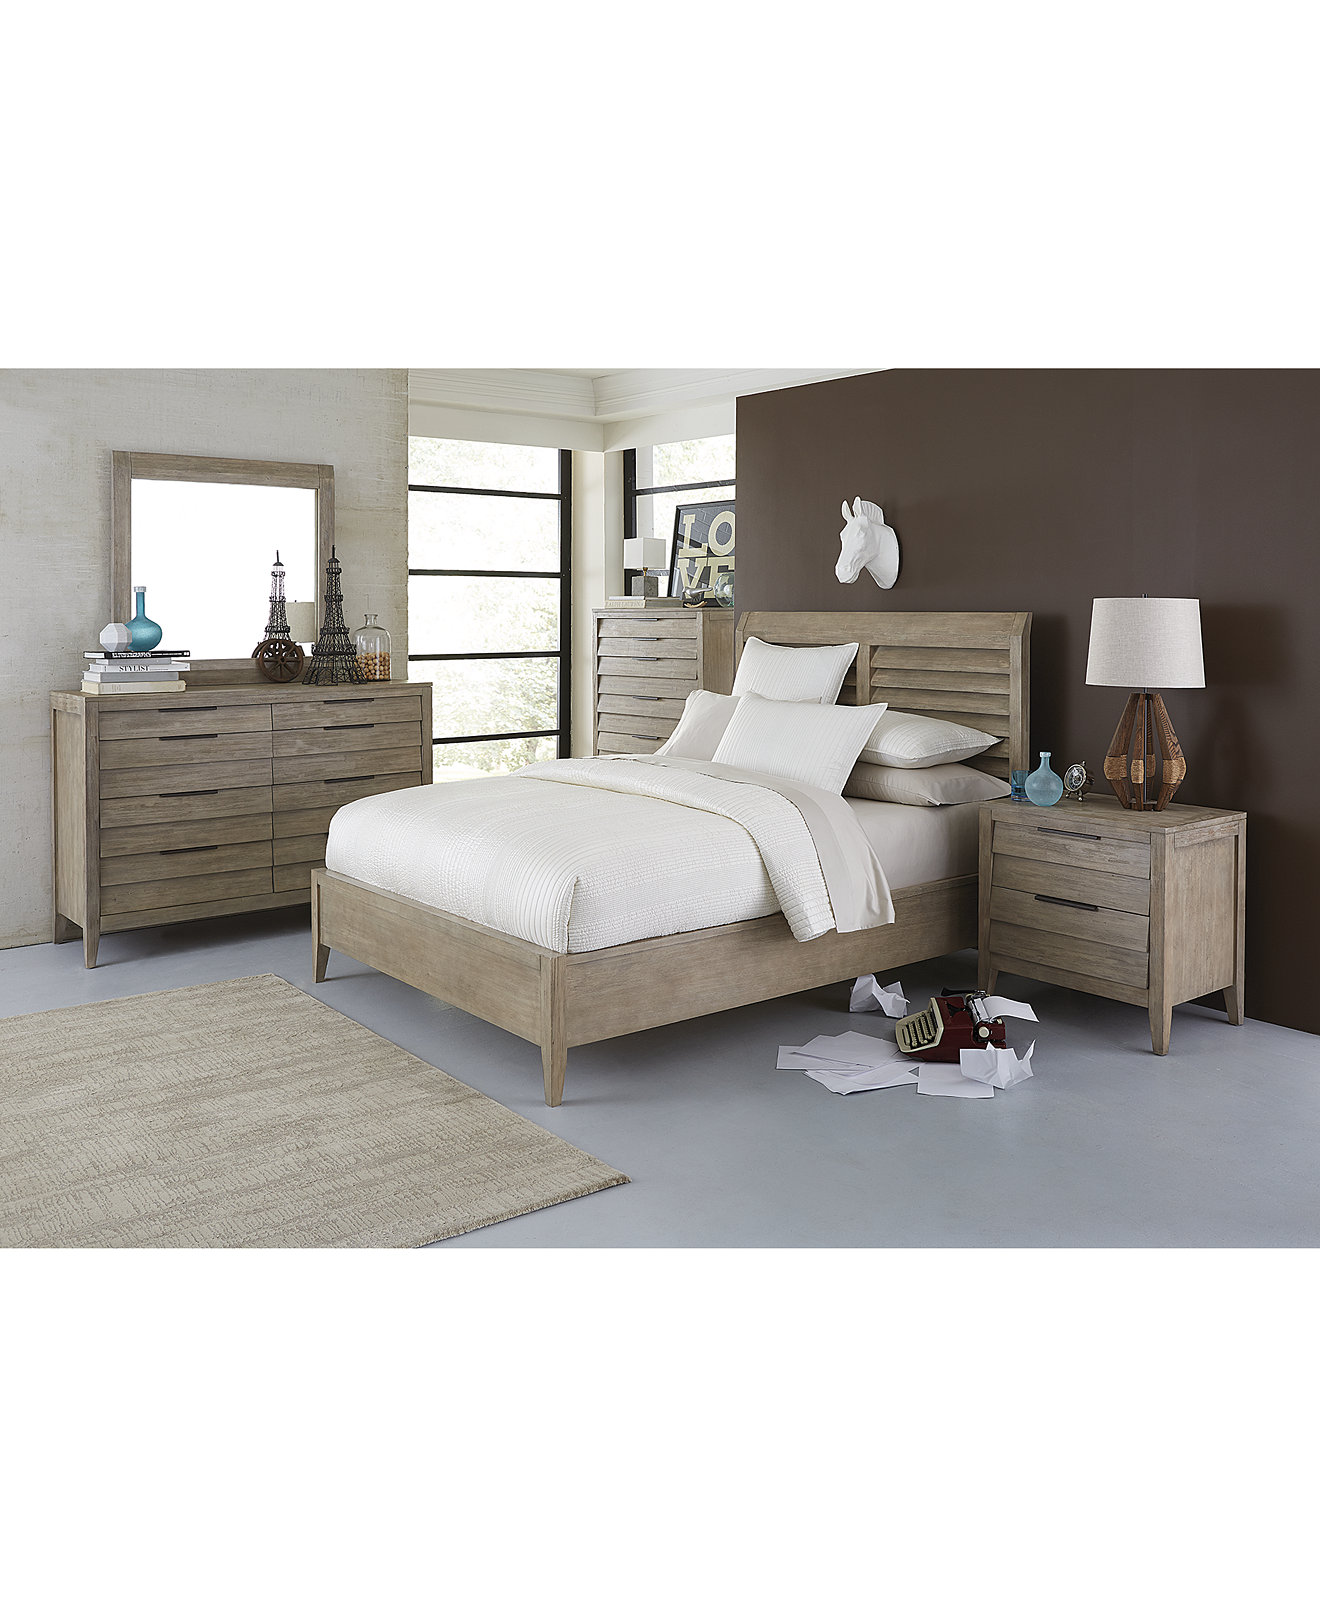 Macy Bedroom Furniture Kips Bay Bedroom Furniture Collection Only At Macys Furniture